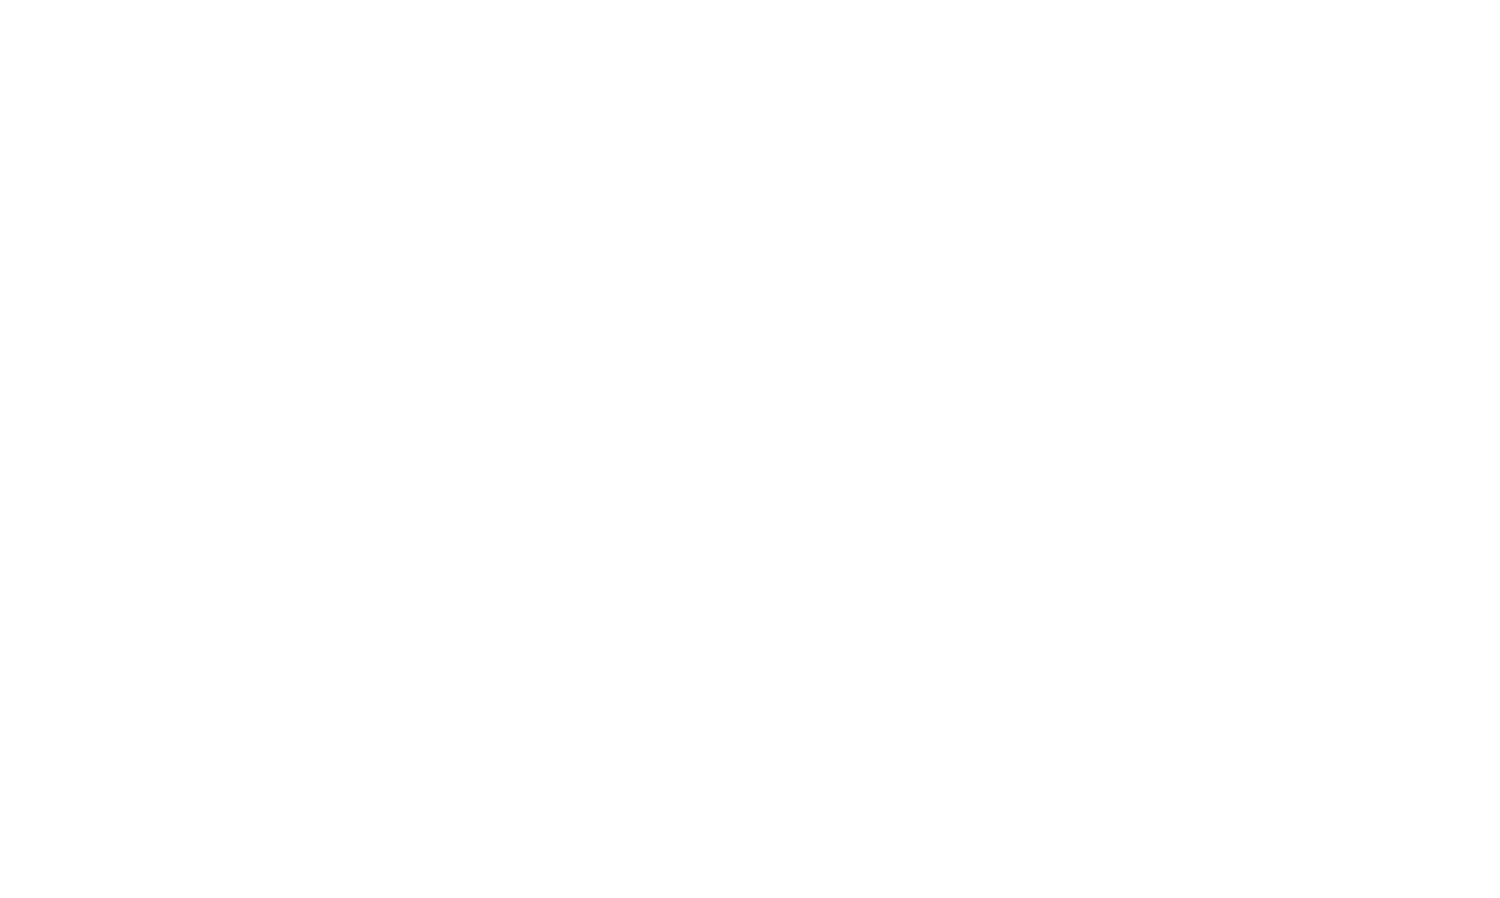 Civil Axe Throwing - Montgomery